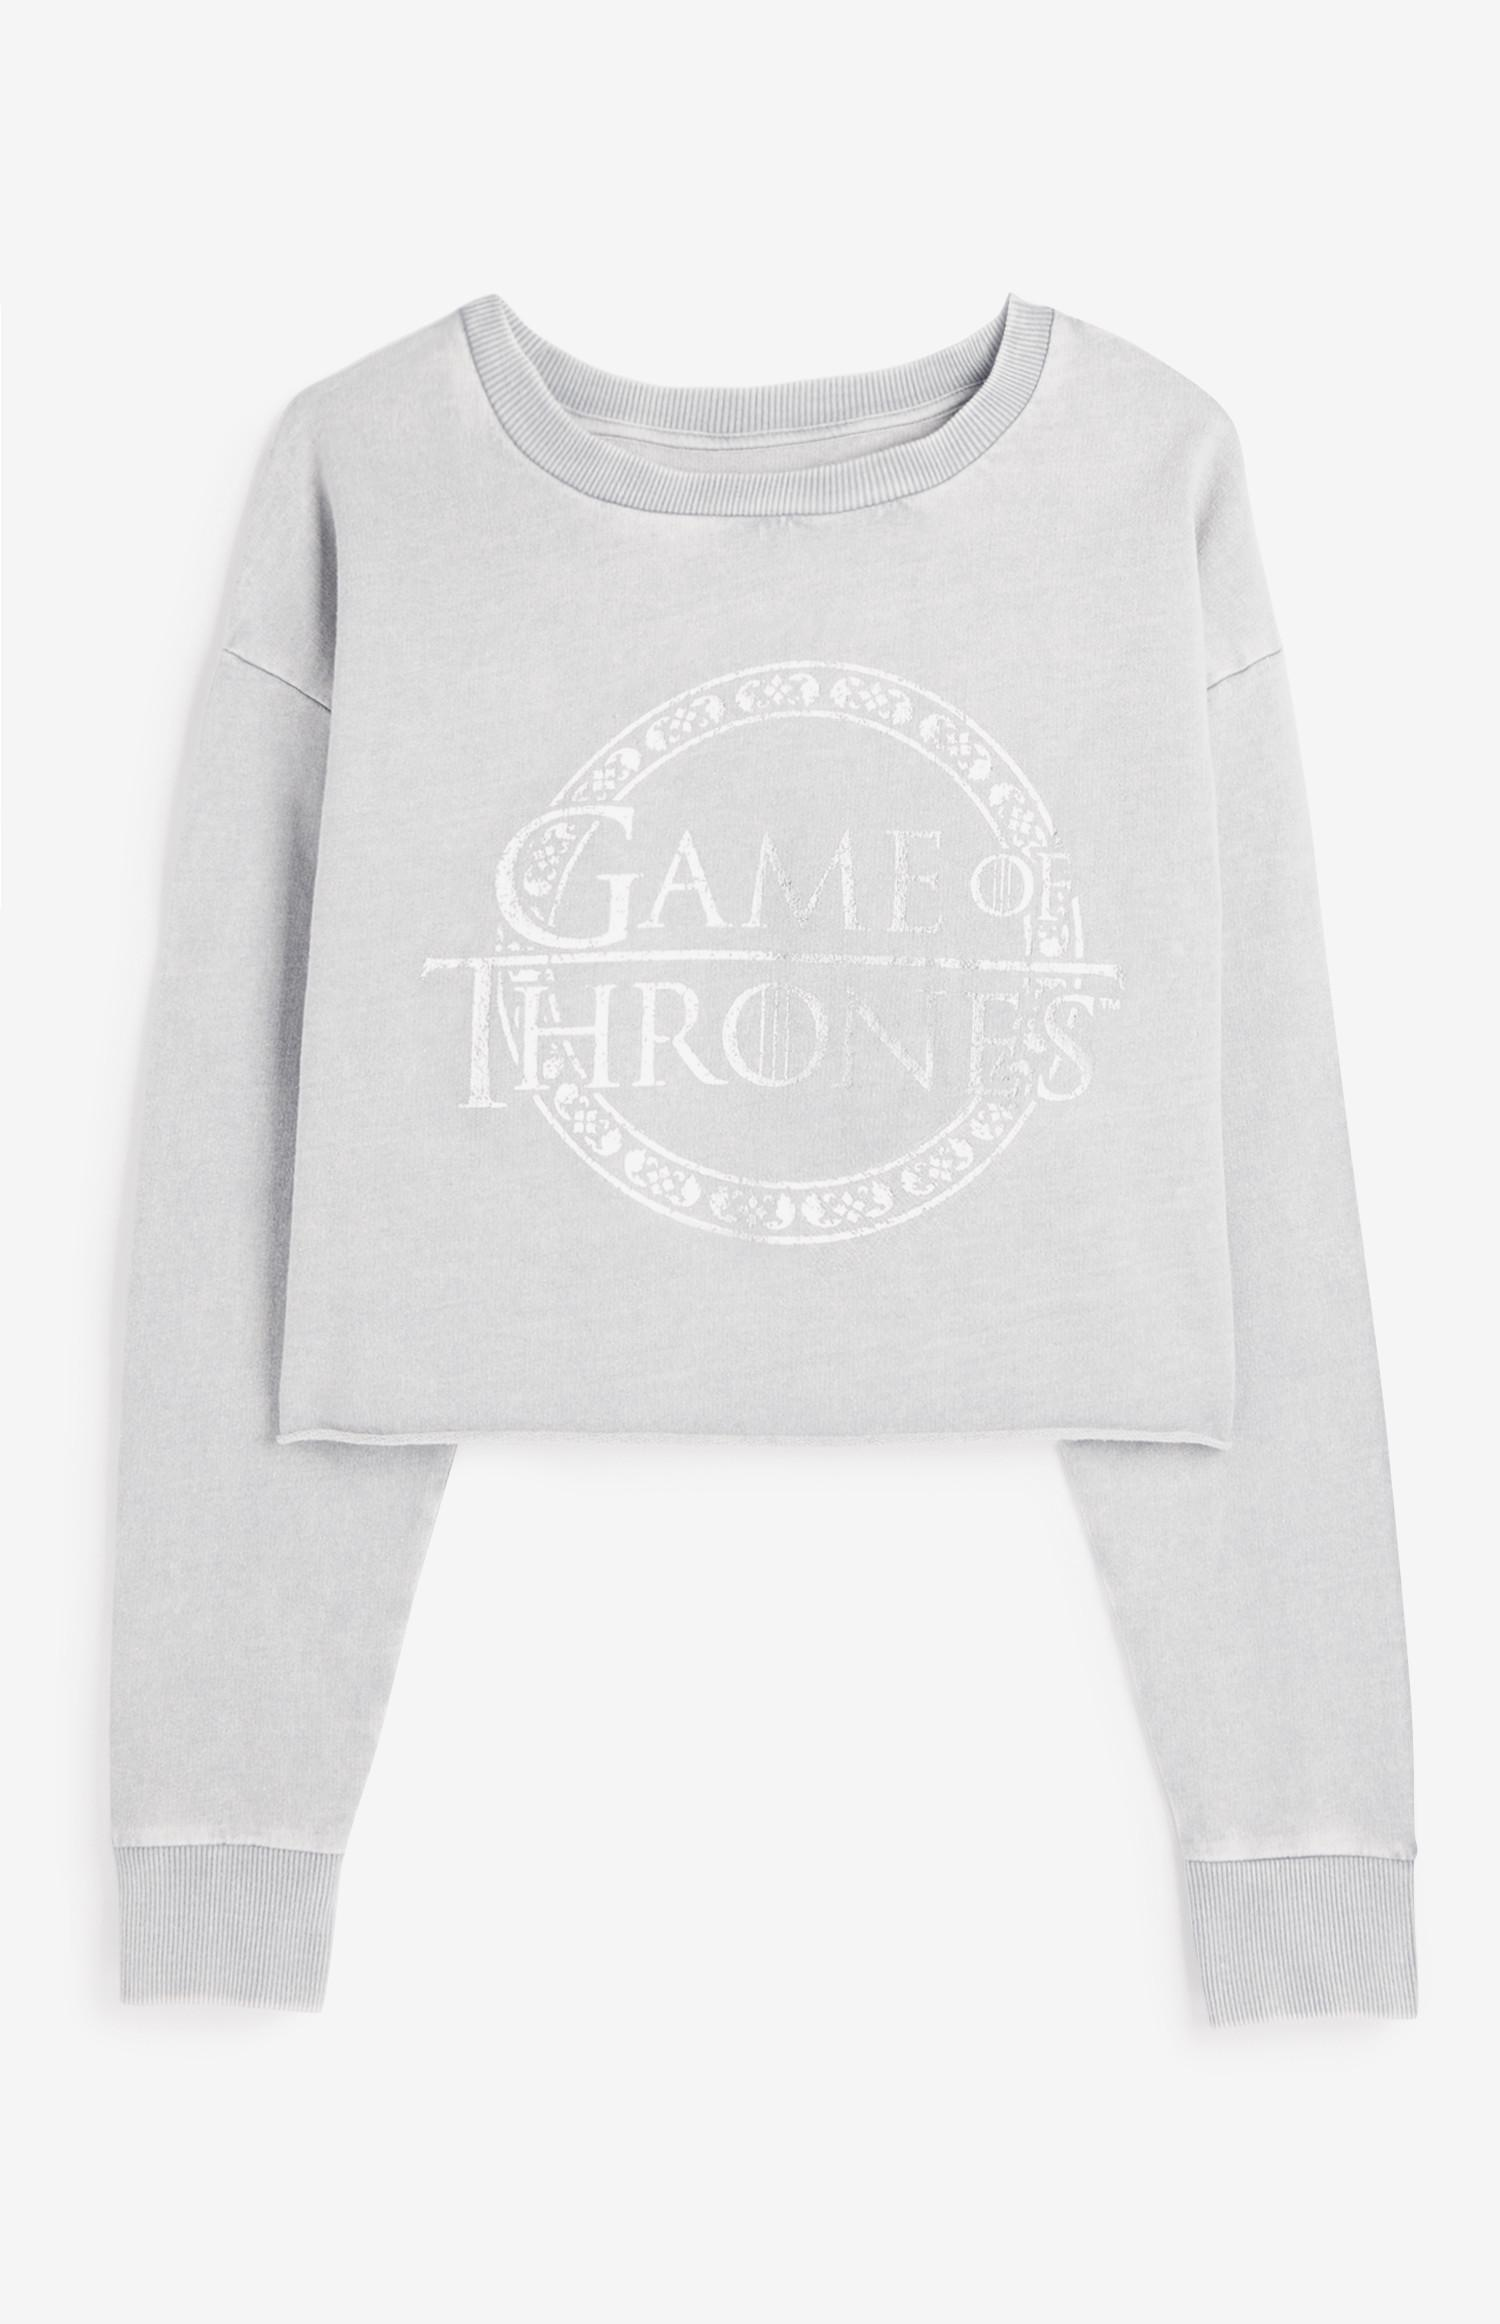 Game Of Thrones Crop Sweatshirt